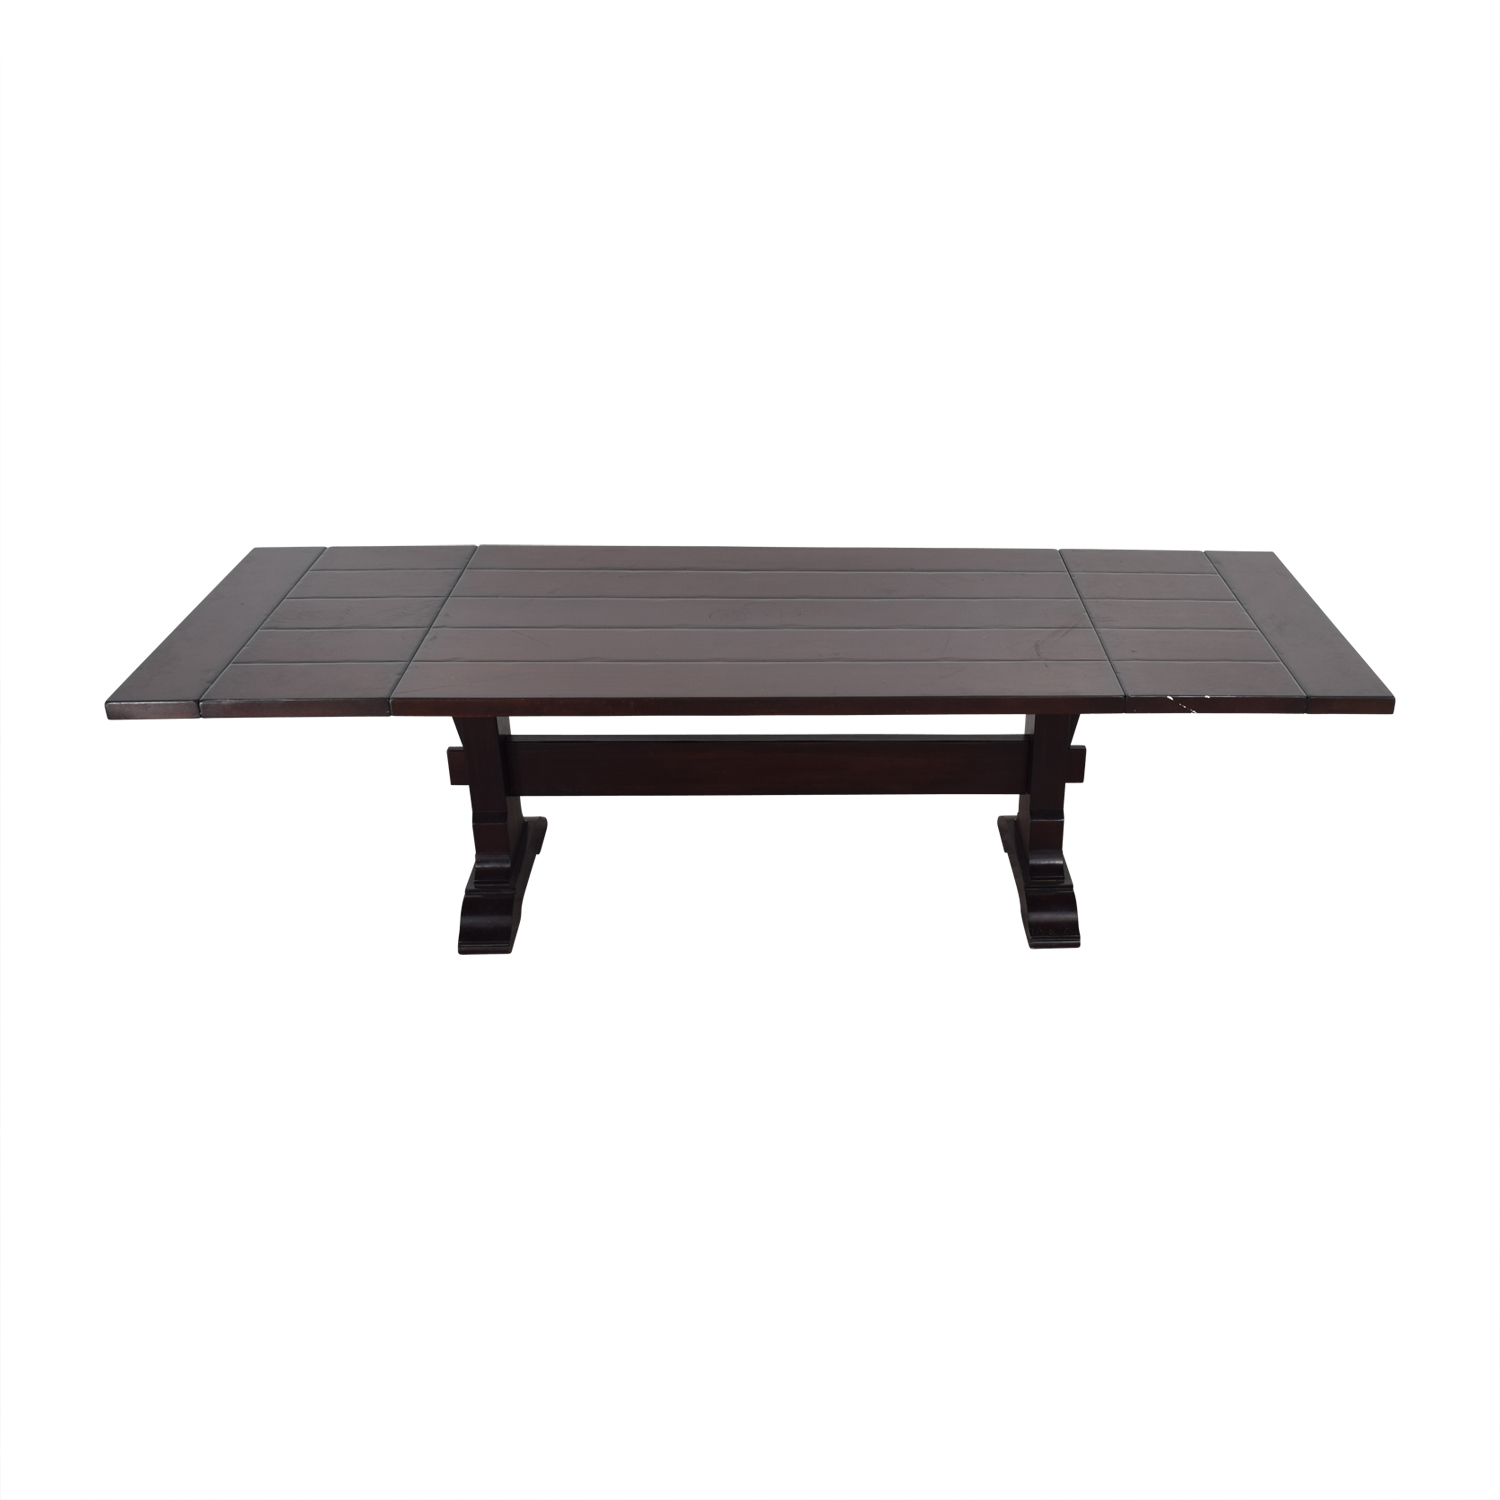 Pottery Barn Extendable Wood Dining Table Online